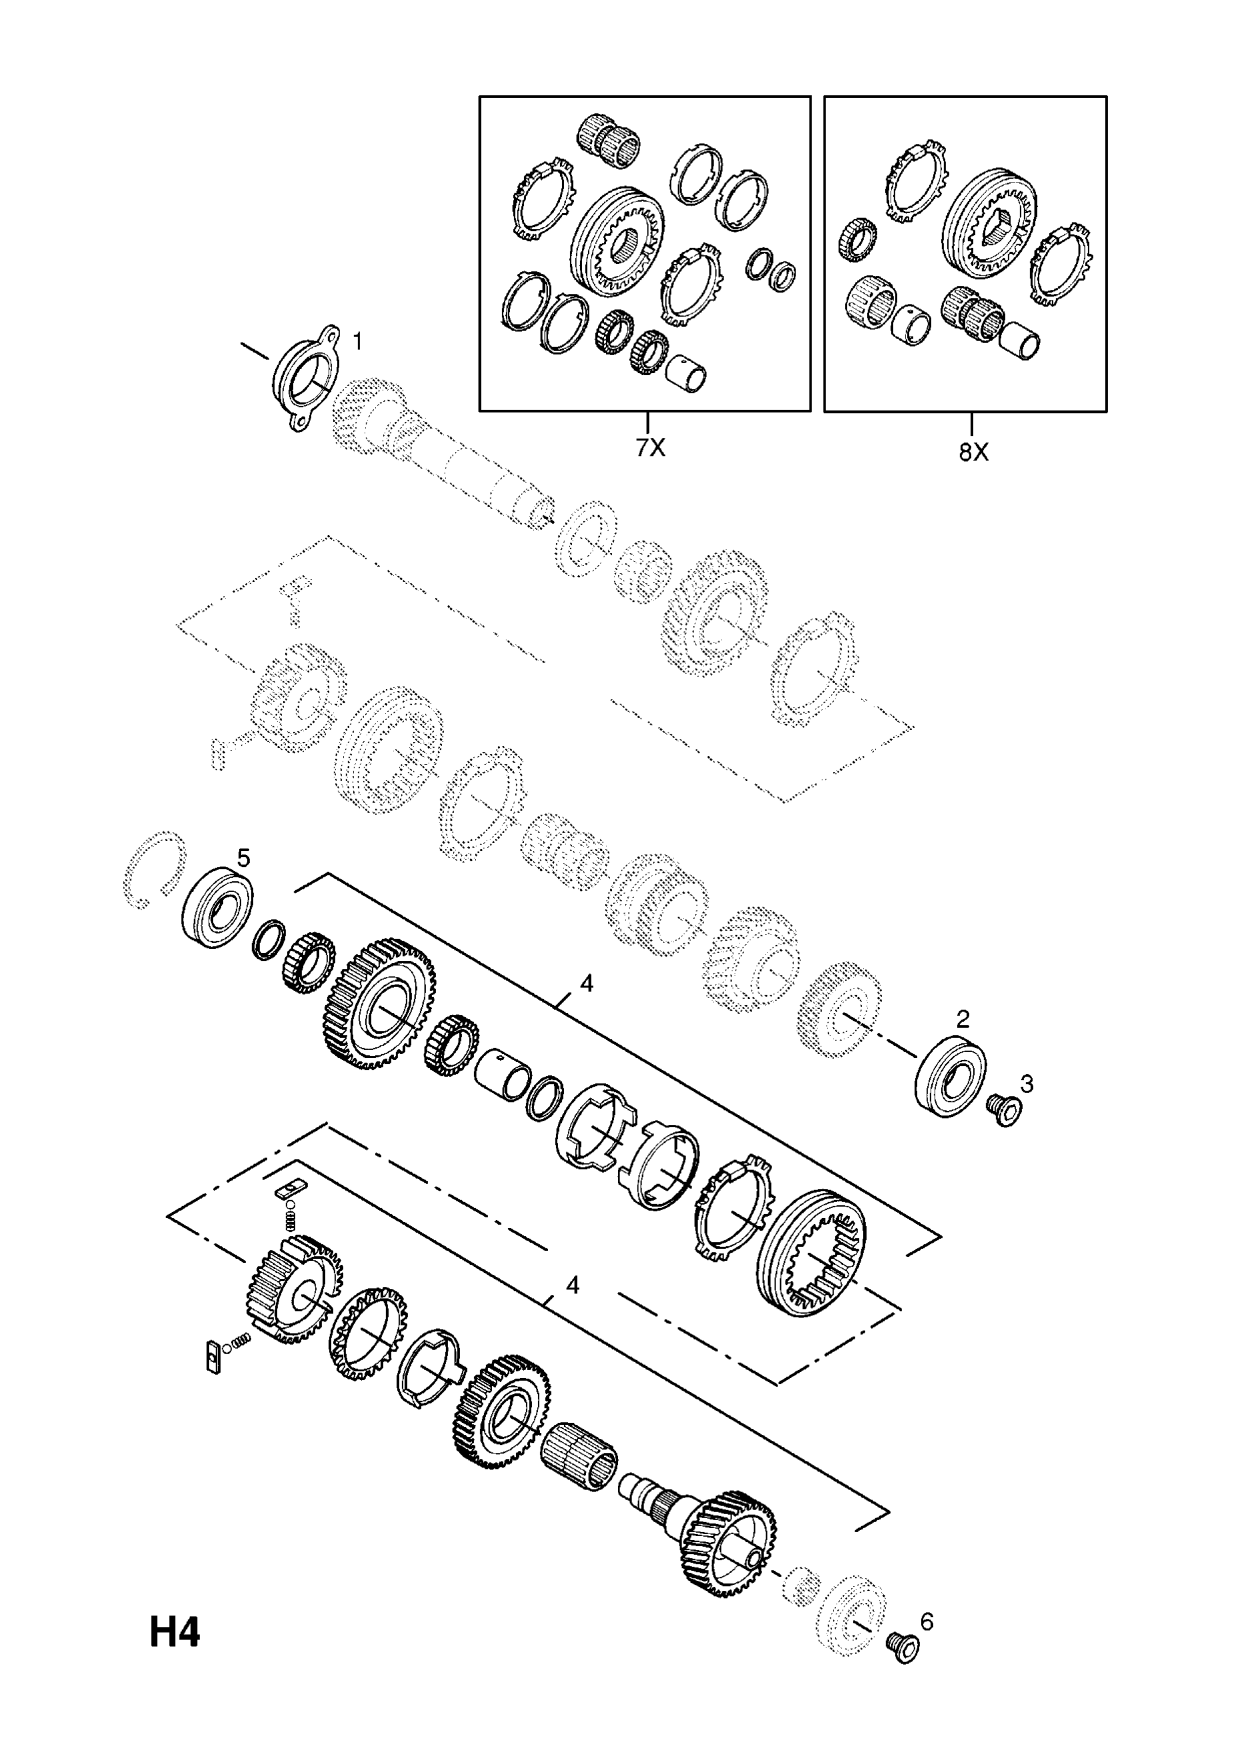 Group H Transmission Subsection 1 F23 Manual transmission